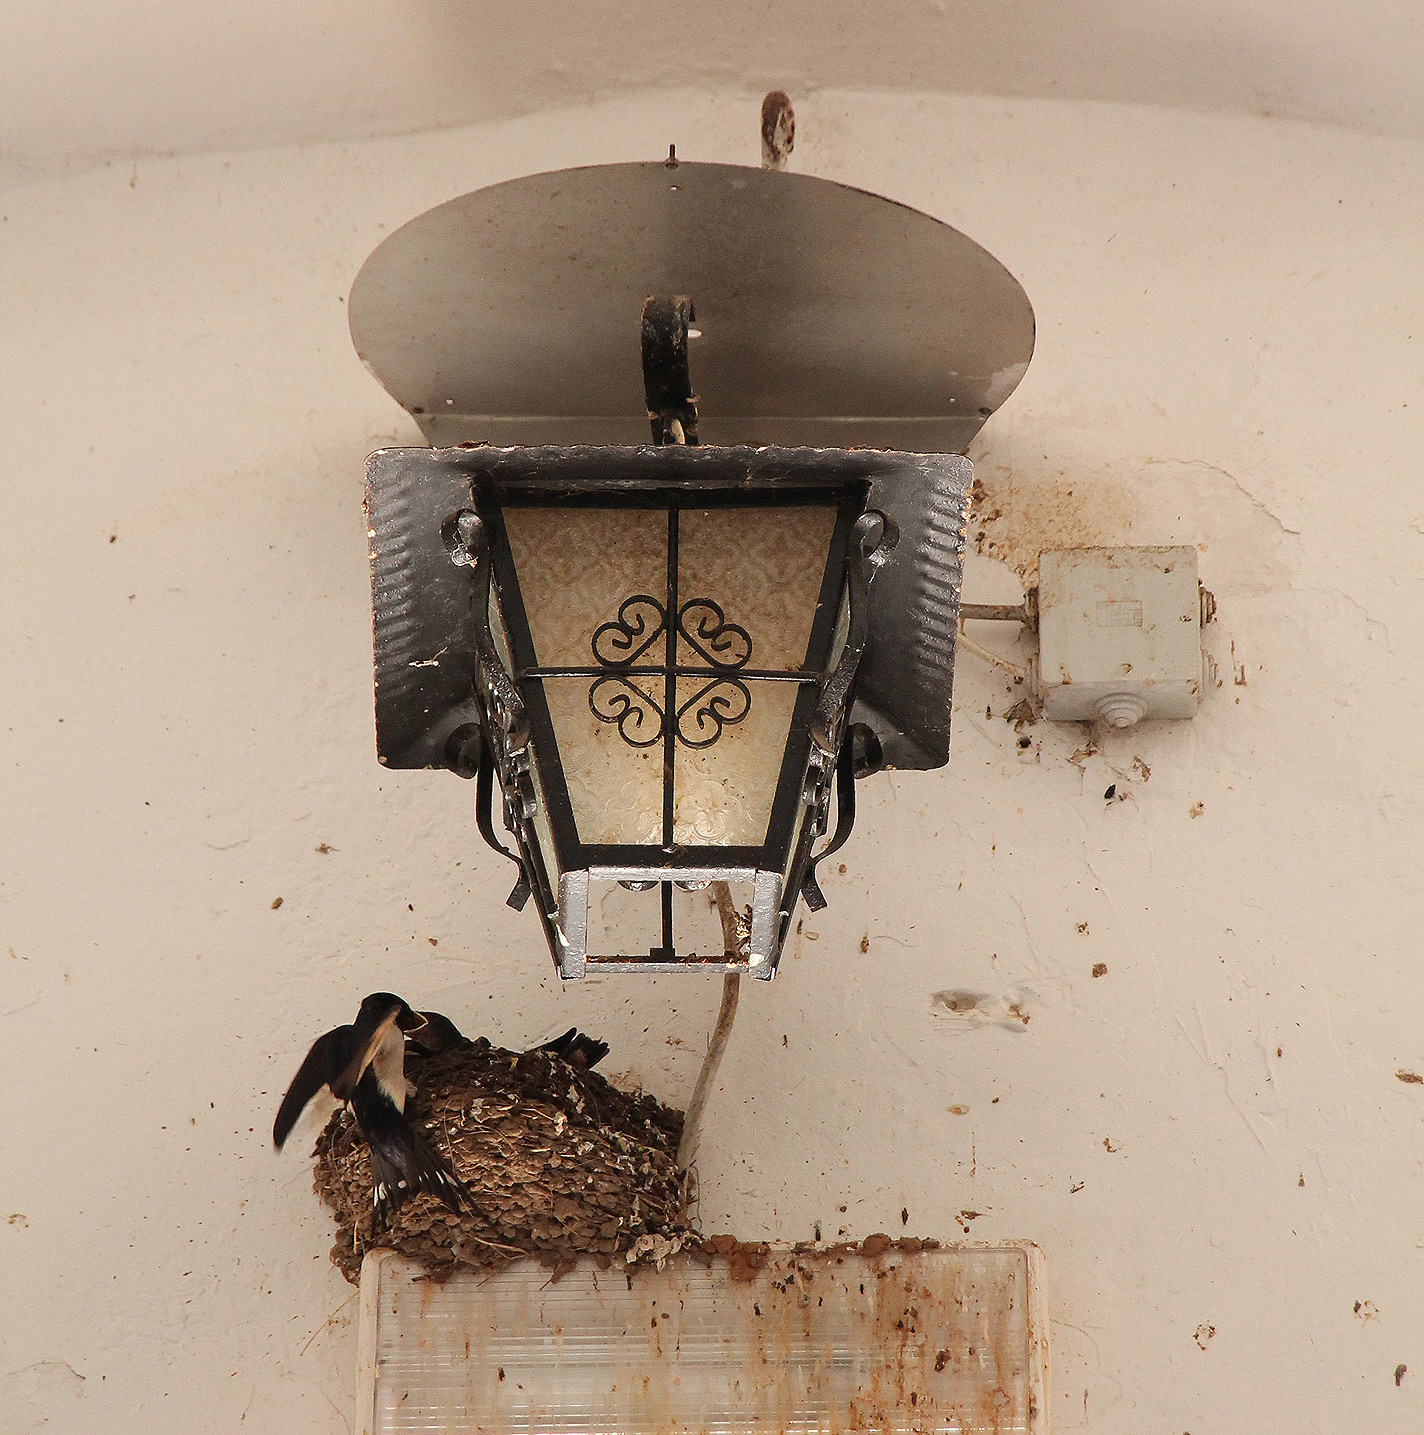 The old stable is a popular nesting place for swallows.